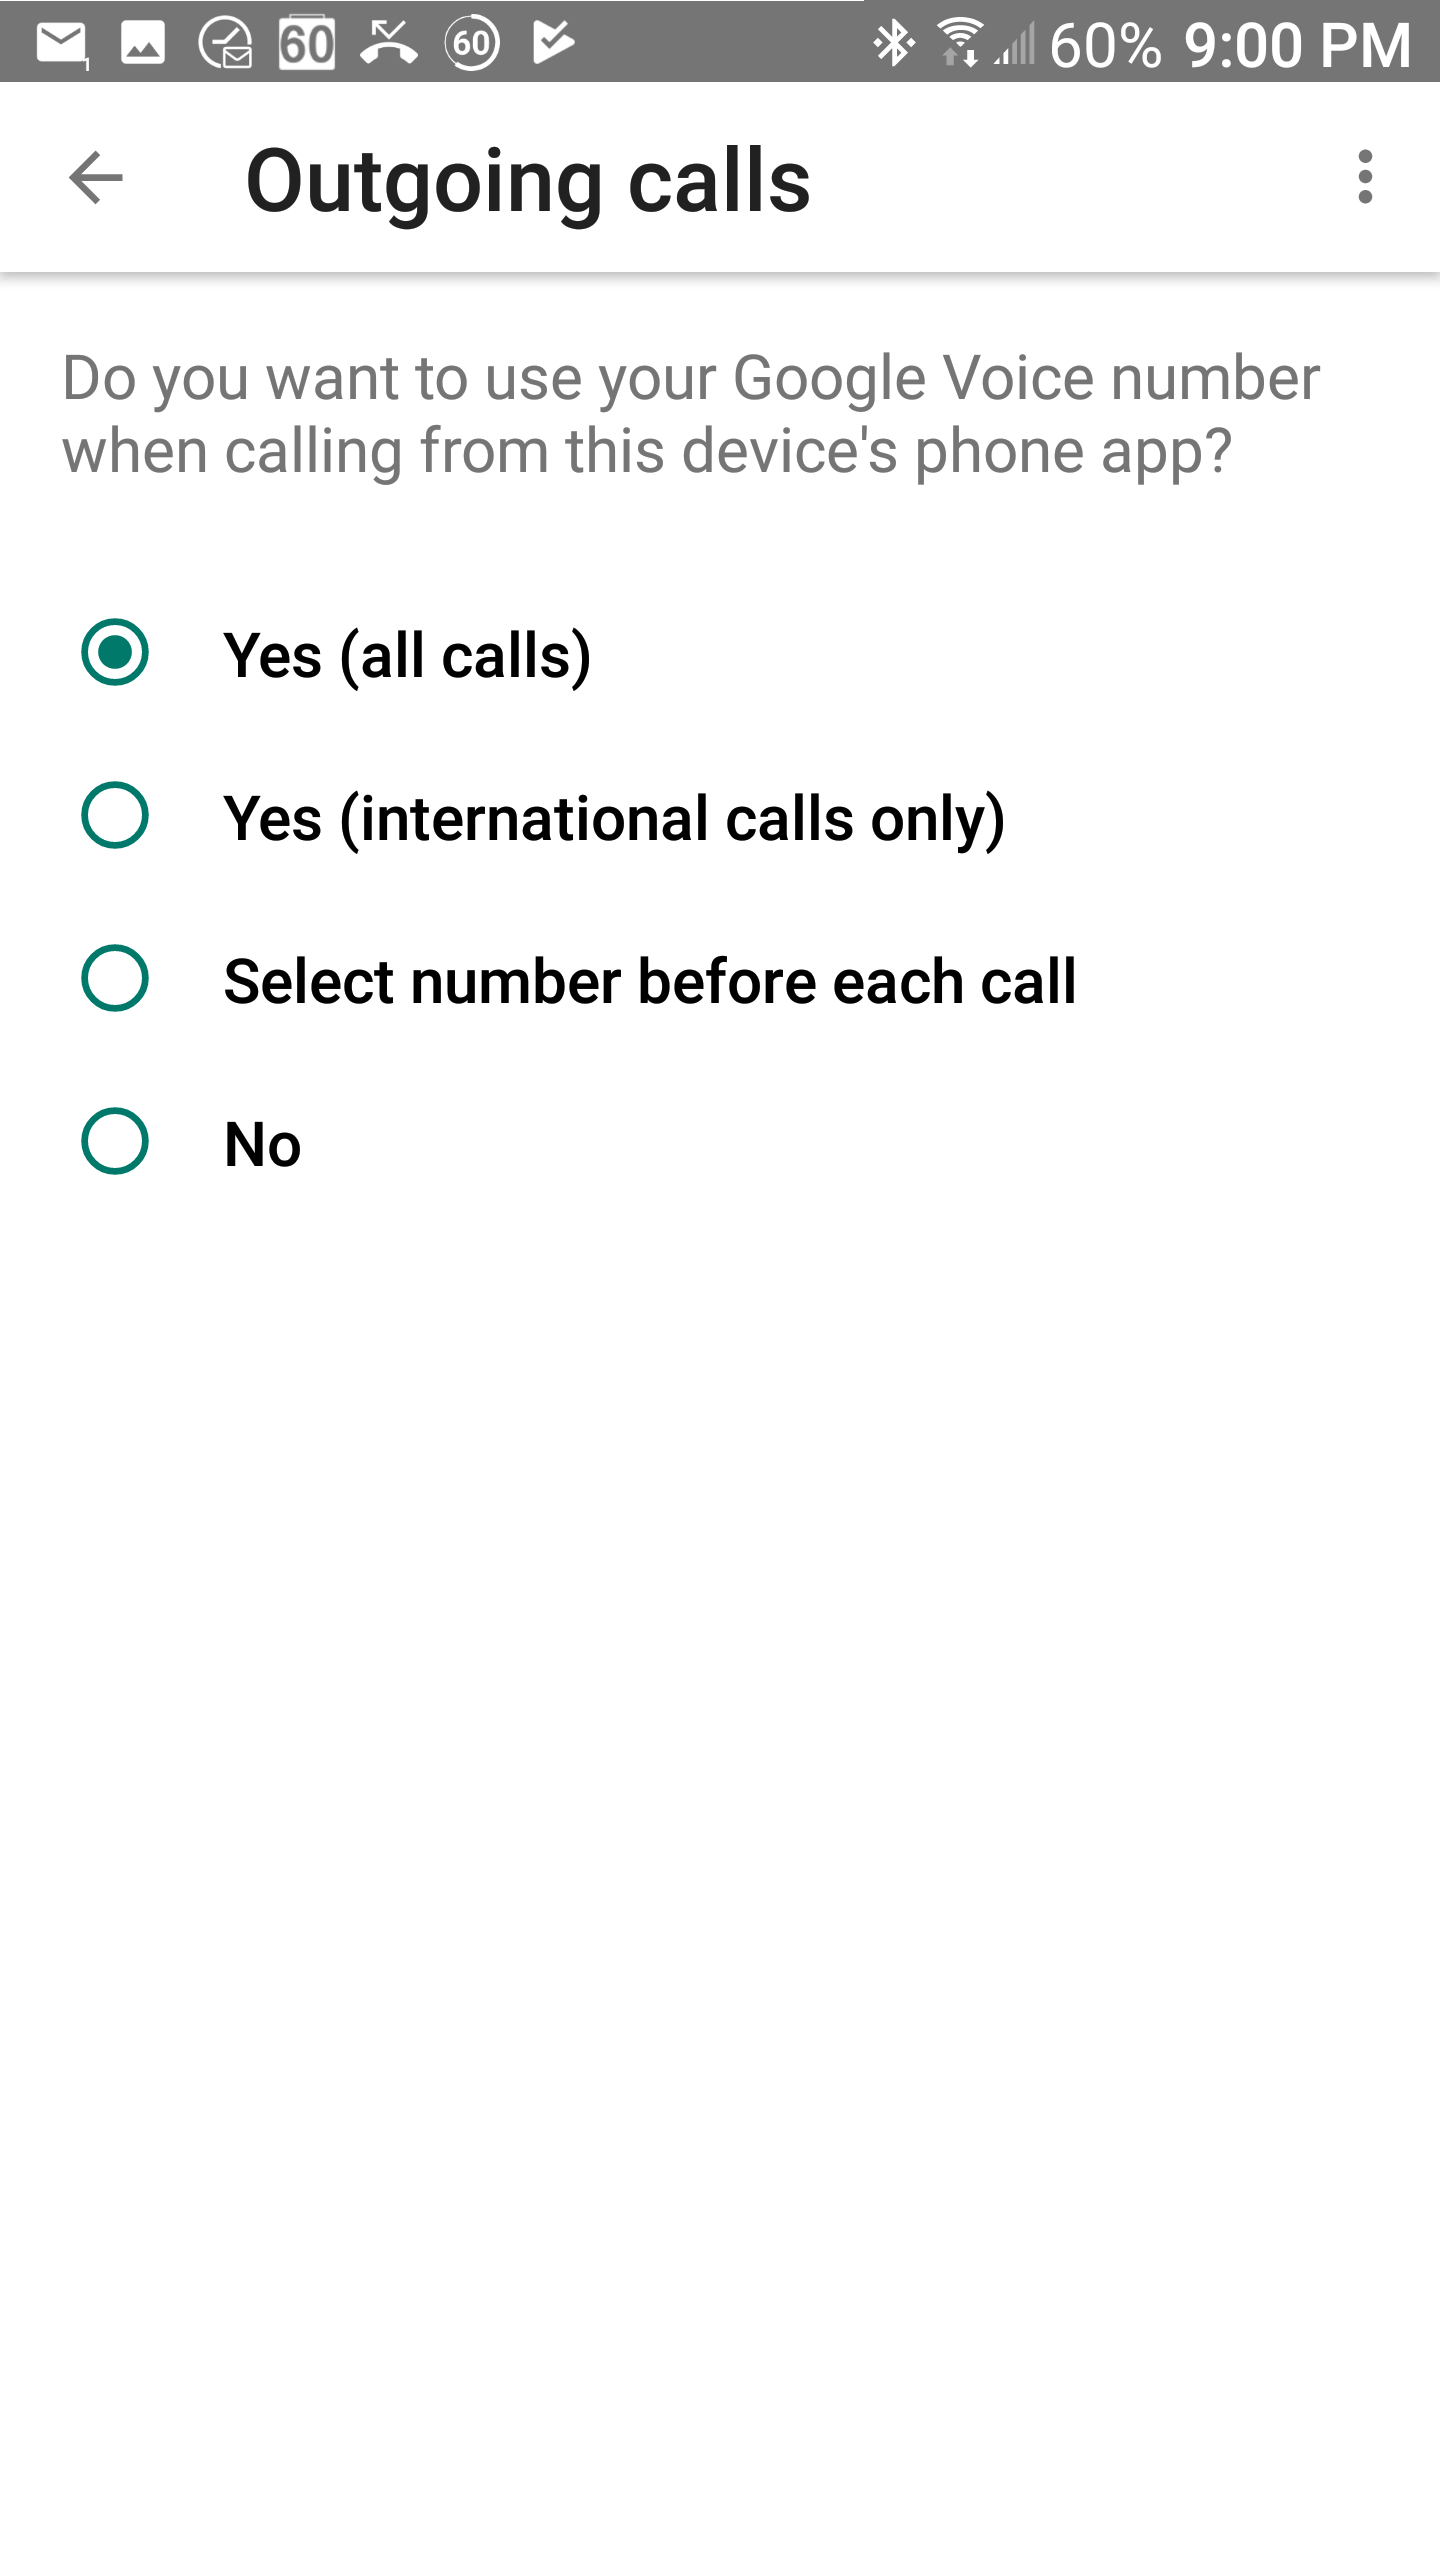 How do I select whether my Android phone uses Google Voice